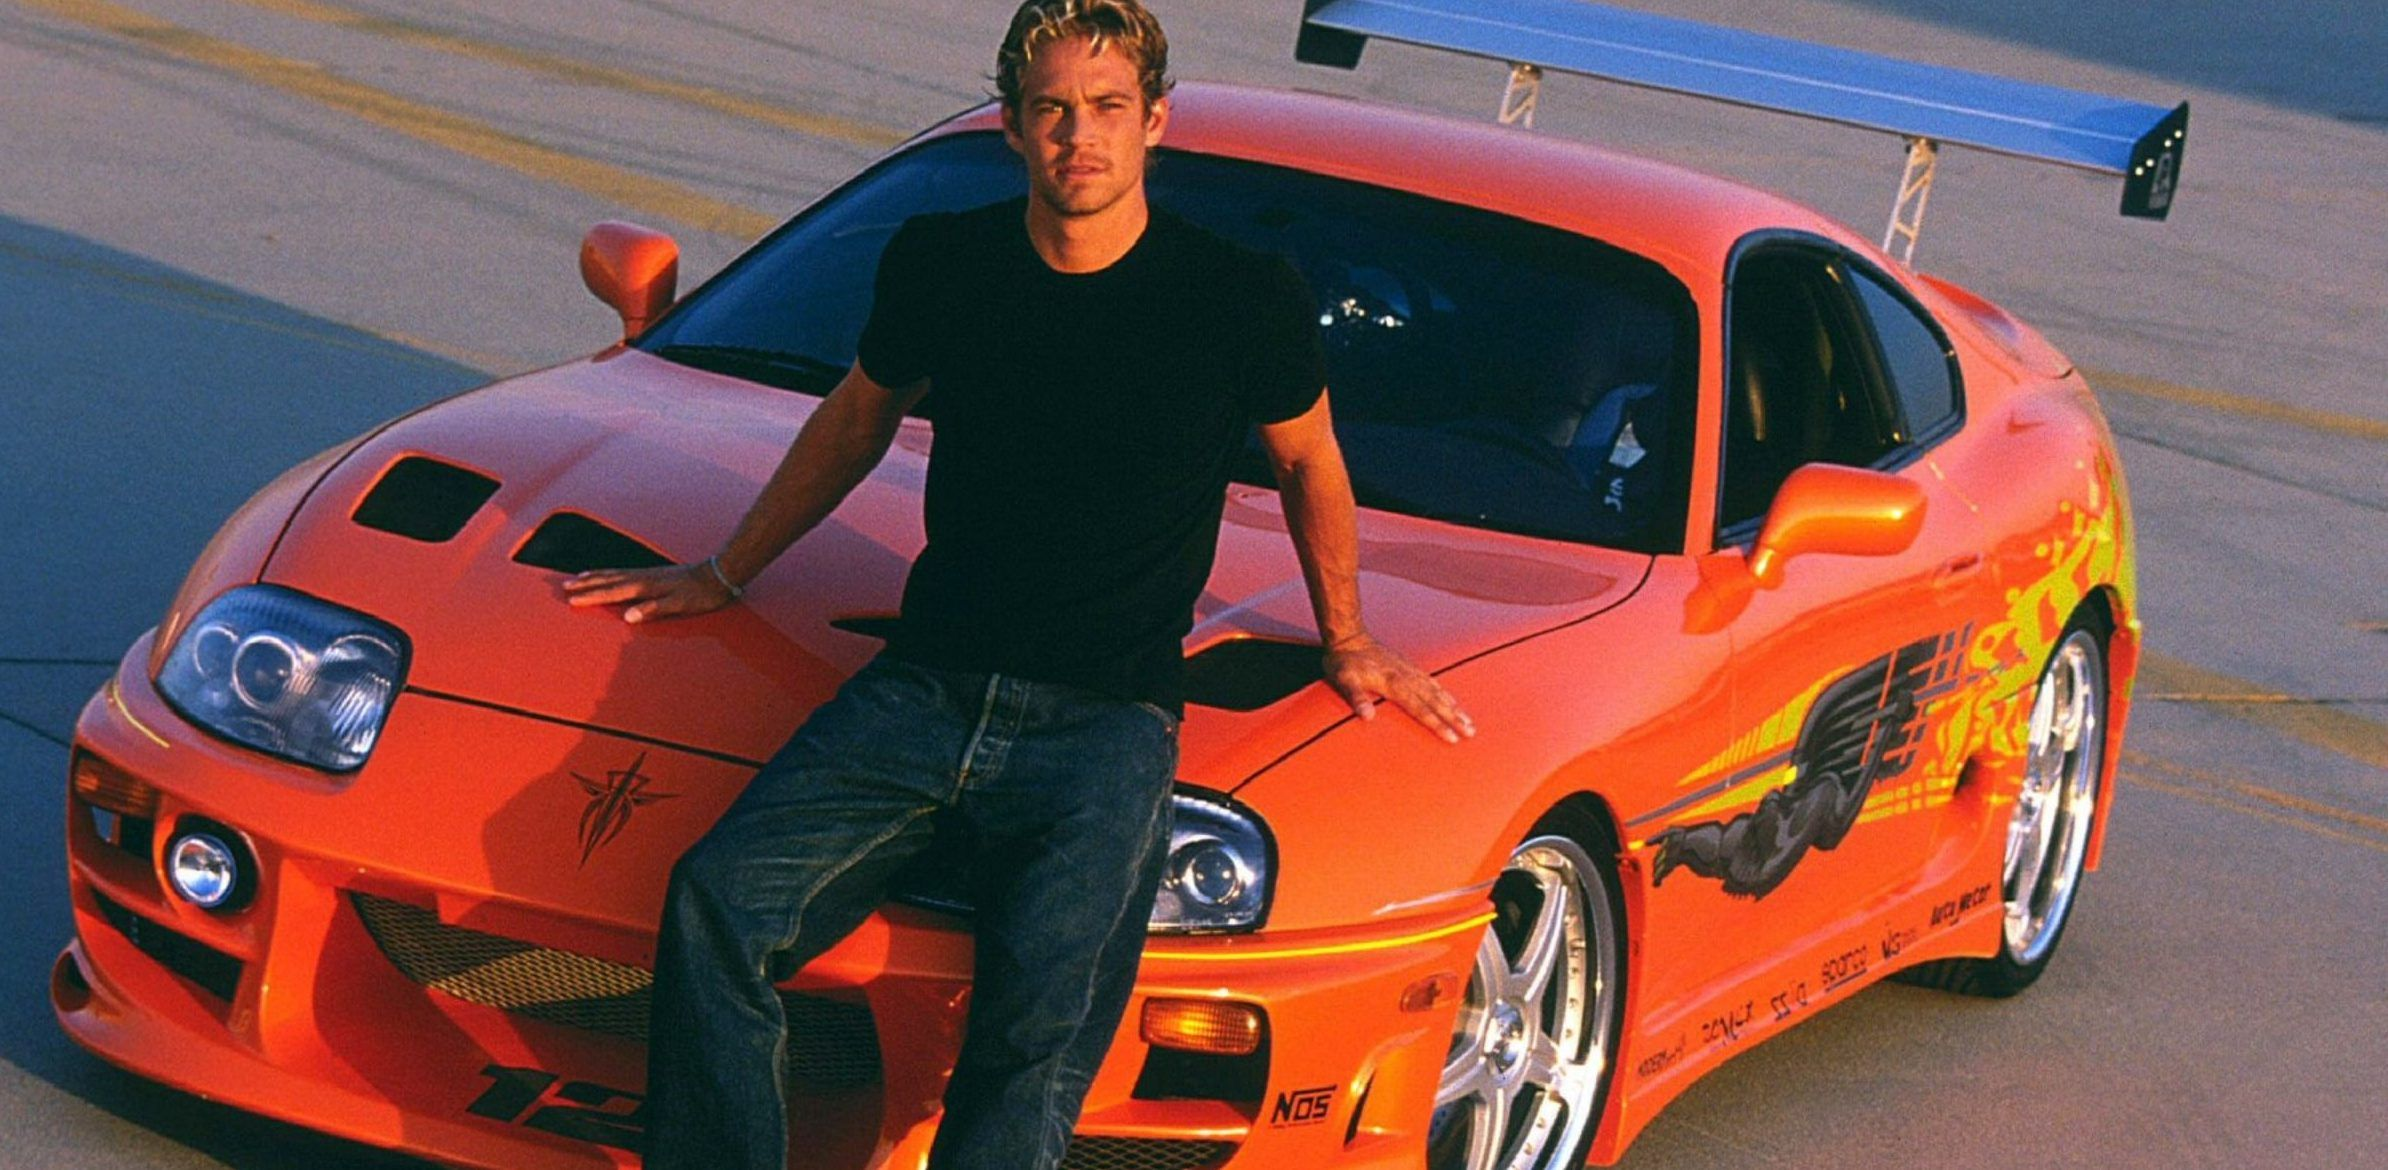 Fast And Furious Iconic Toyota Car Canvas Picture 20x30 Inch Orange Supra